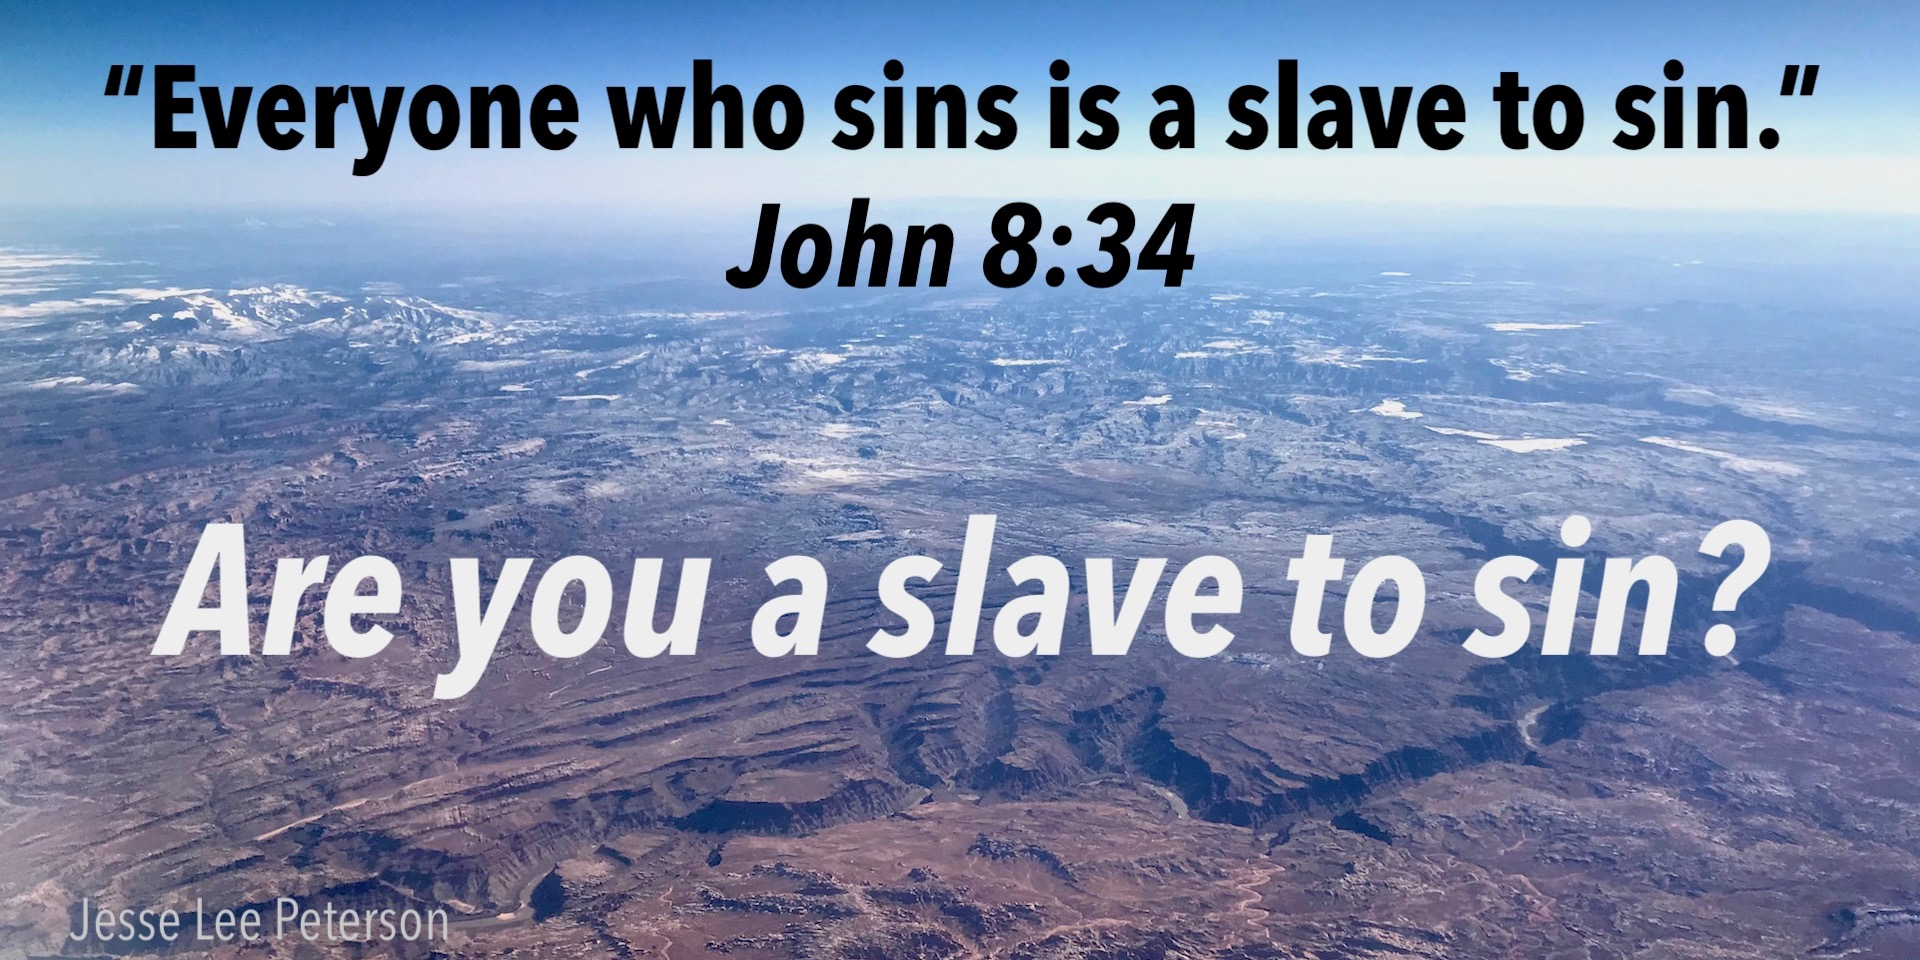 Biblical Question: Are You a Slave to Sin?